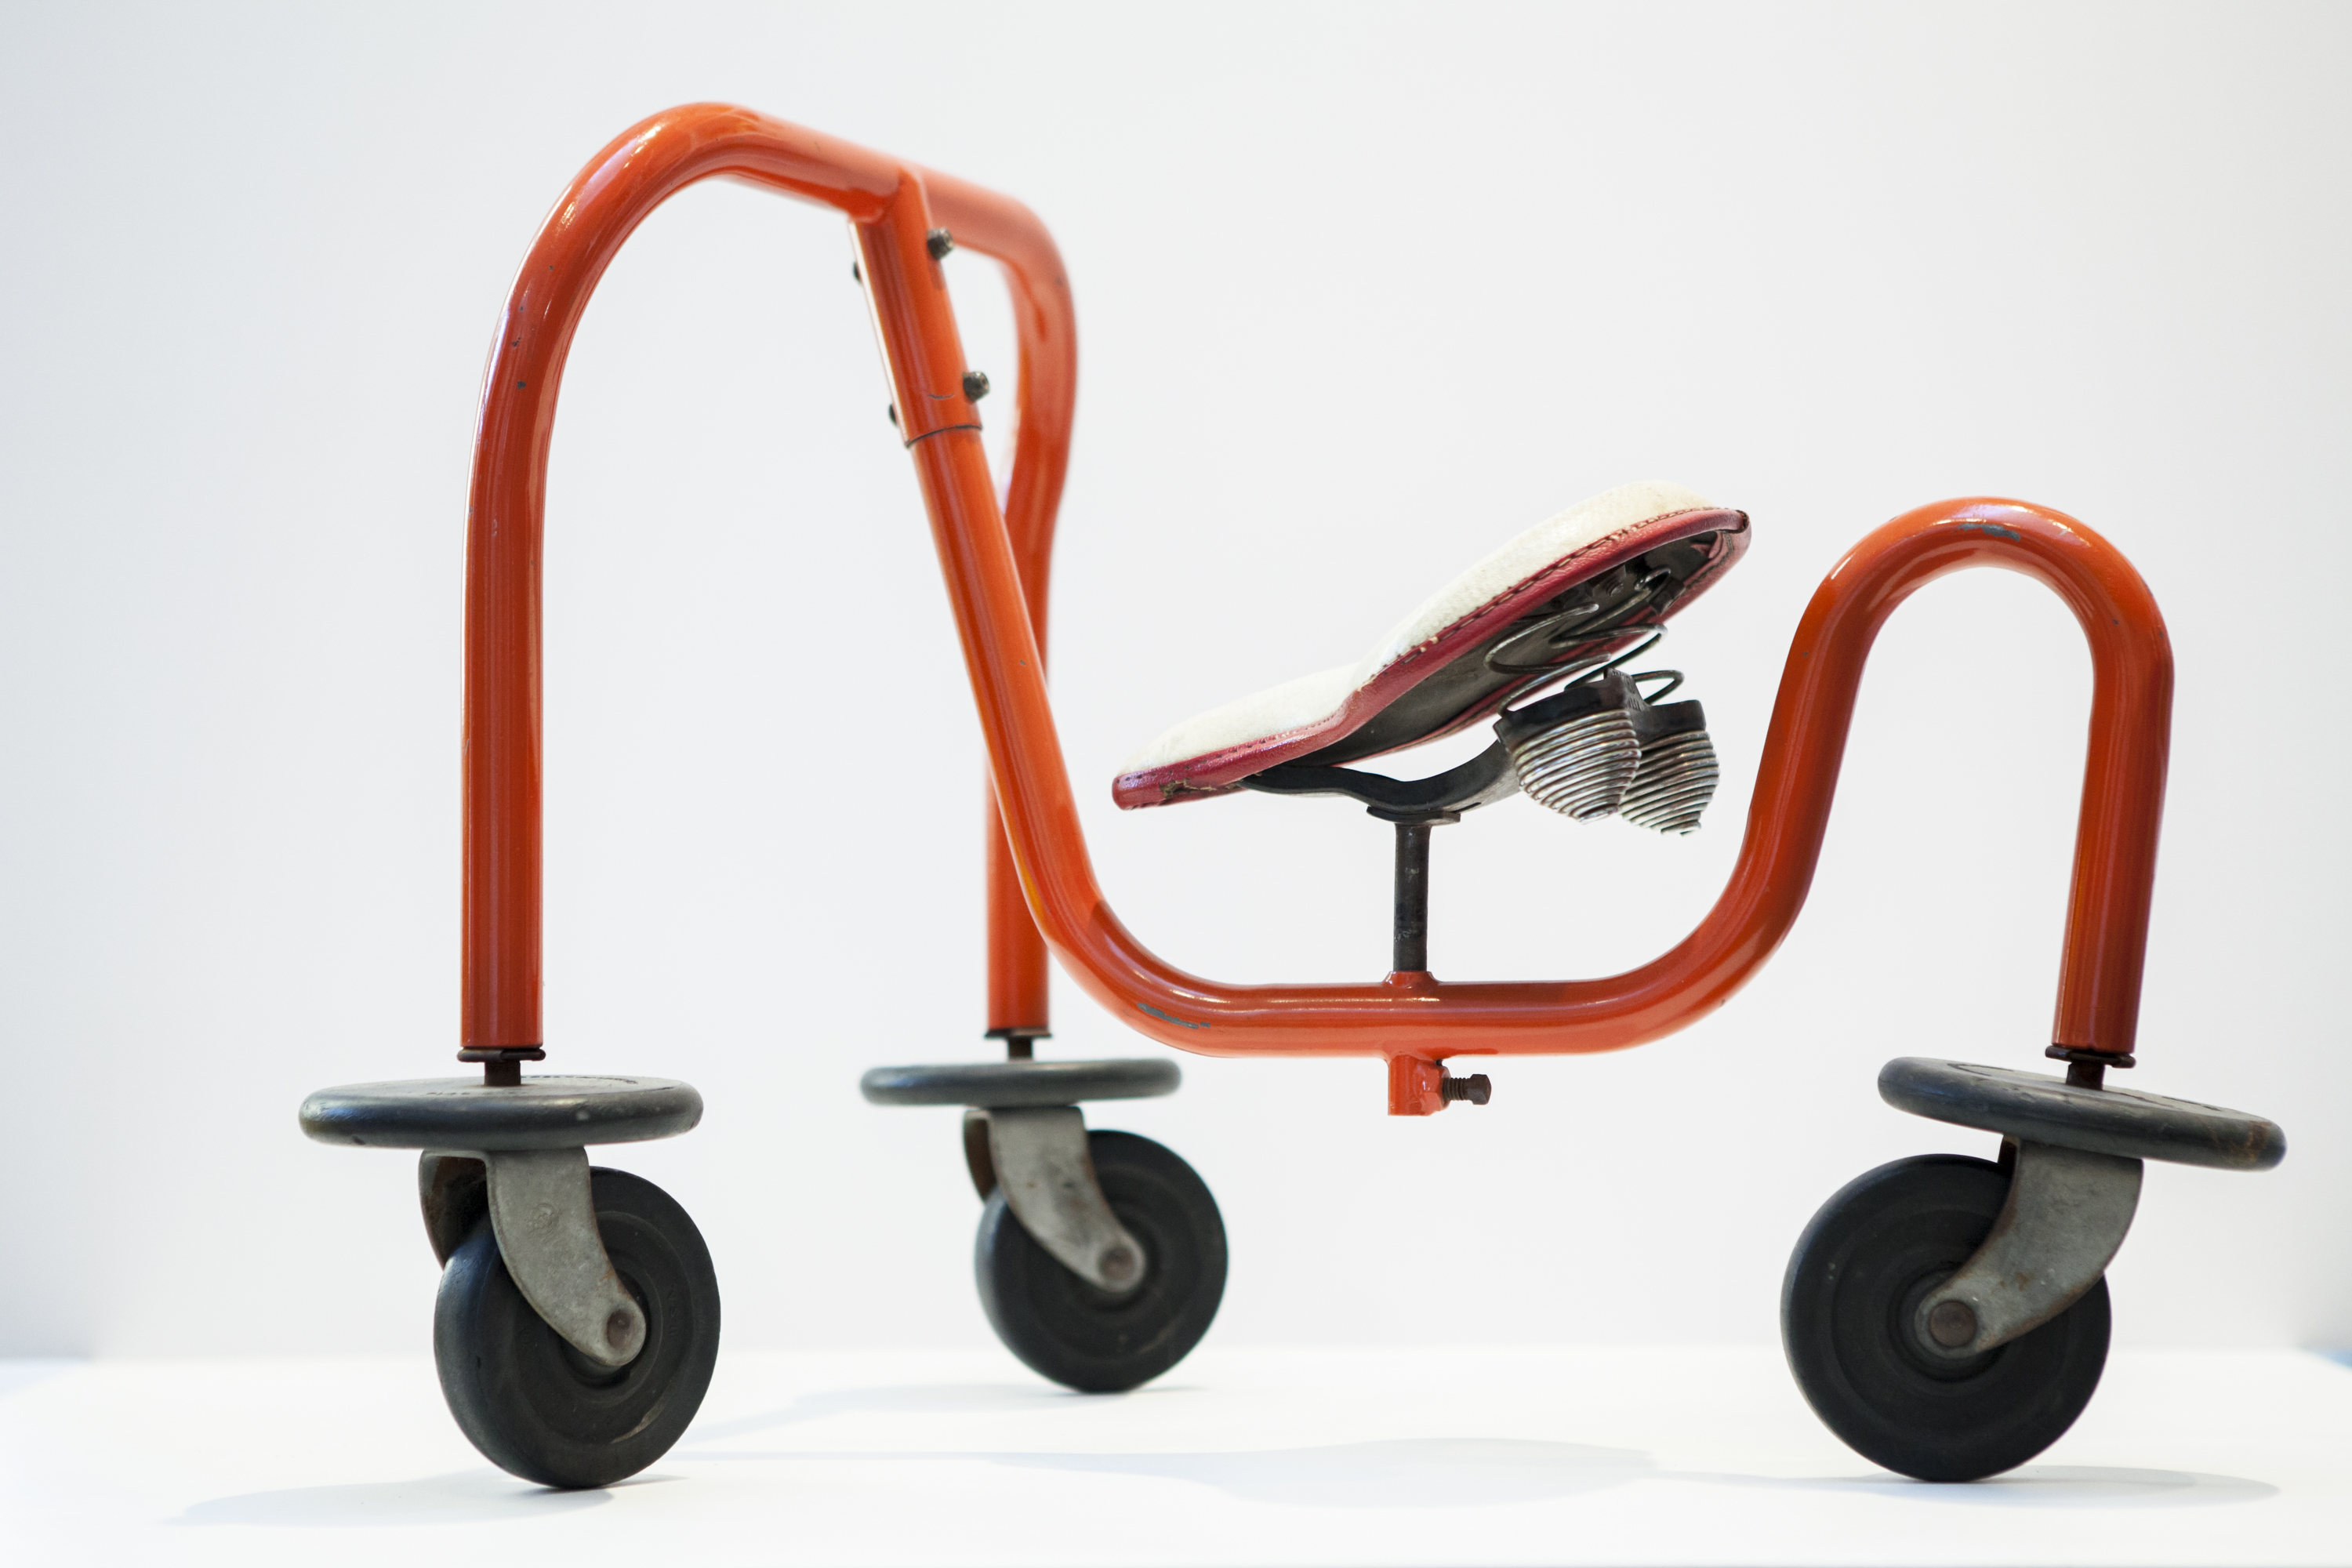 A vintage 1945 Walkee Tricycle by William B. Fageol